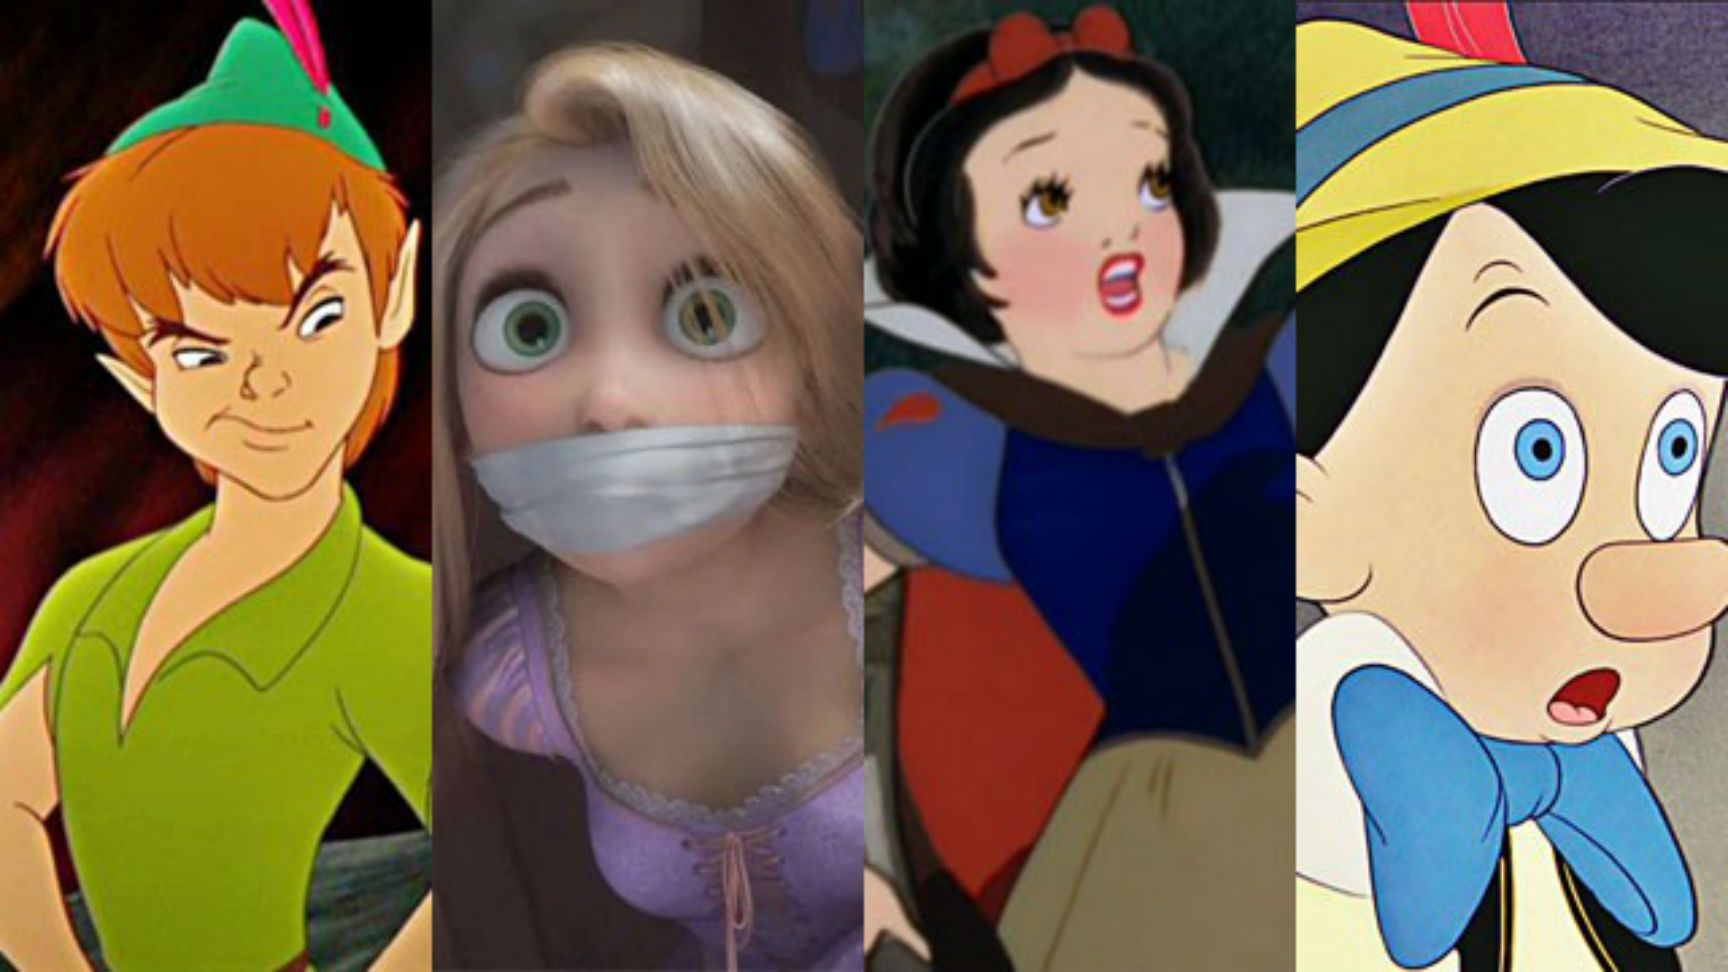 15 Disney Films That Have Extremely Horrific Origin Stories